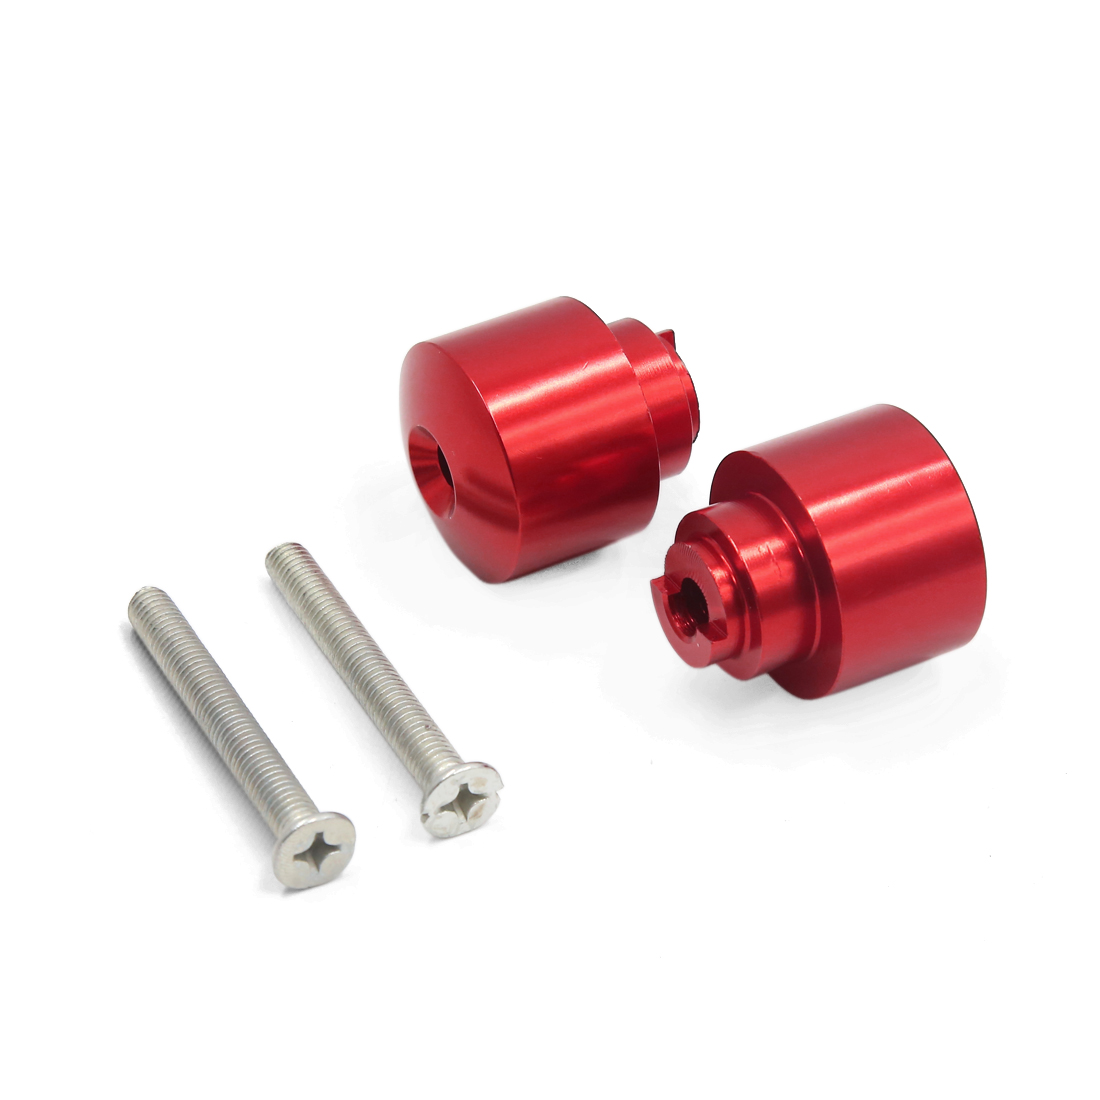 2Pcs Universal Red Aluminum Alloy 21mm Handlebar End Cap for Motorcycle